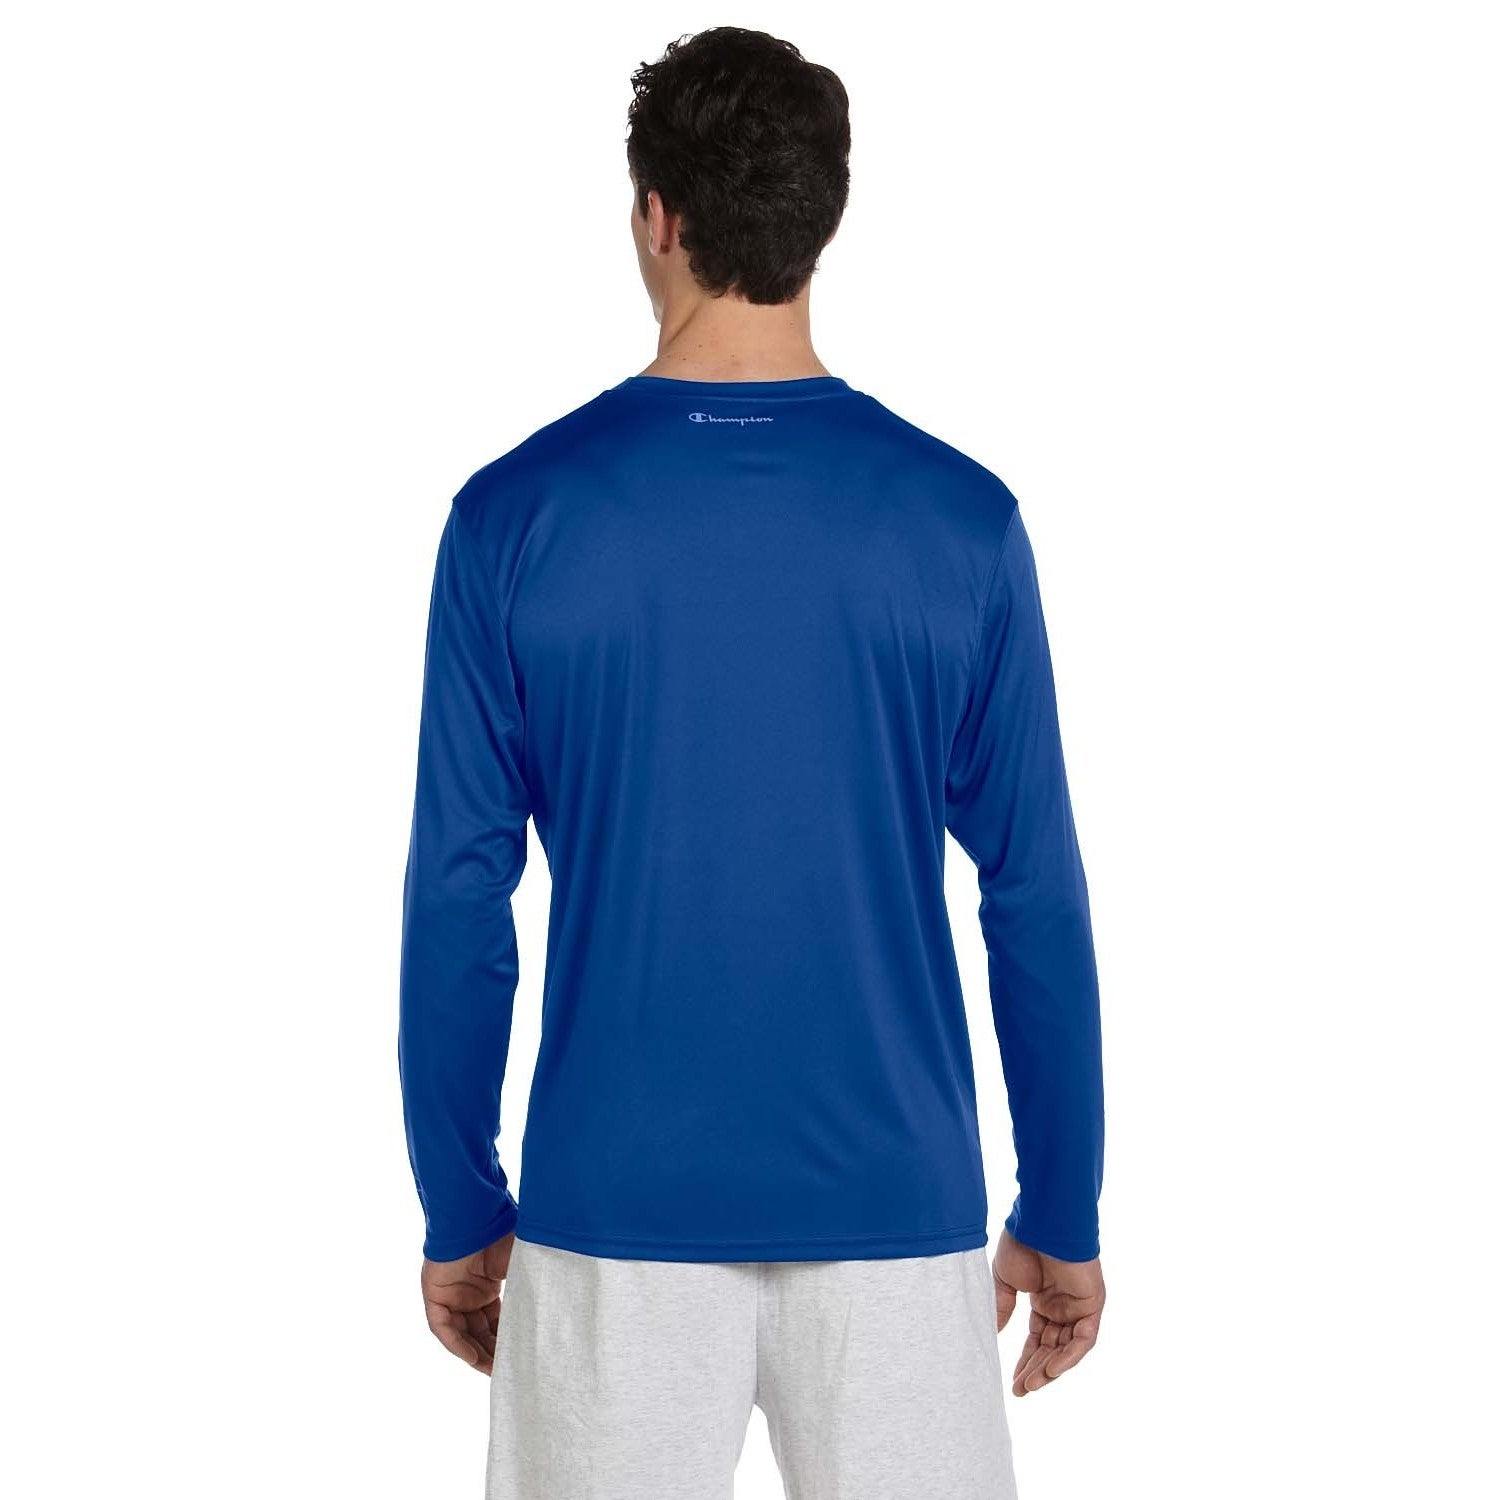 ffe70bcec Shop Champion Men's Double Dry Performance Long Sleeve T-shirt - On Sale - Free  Shipping On Orders Over $45 - Overstock - 8984873